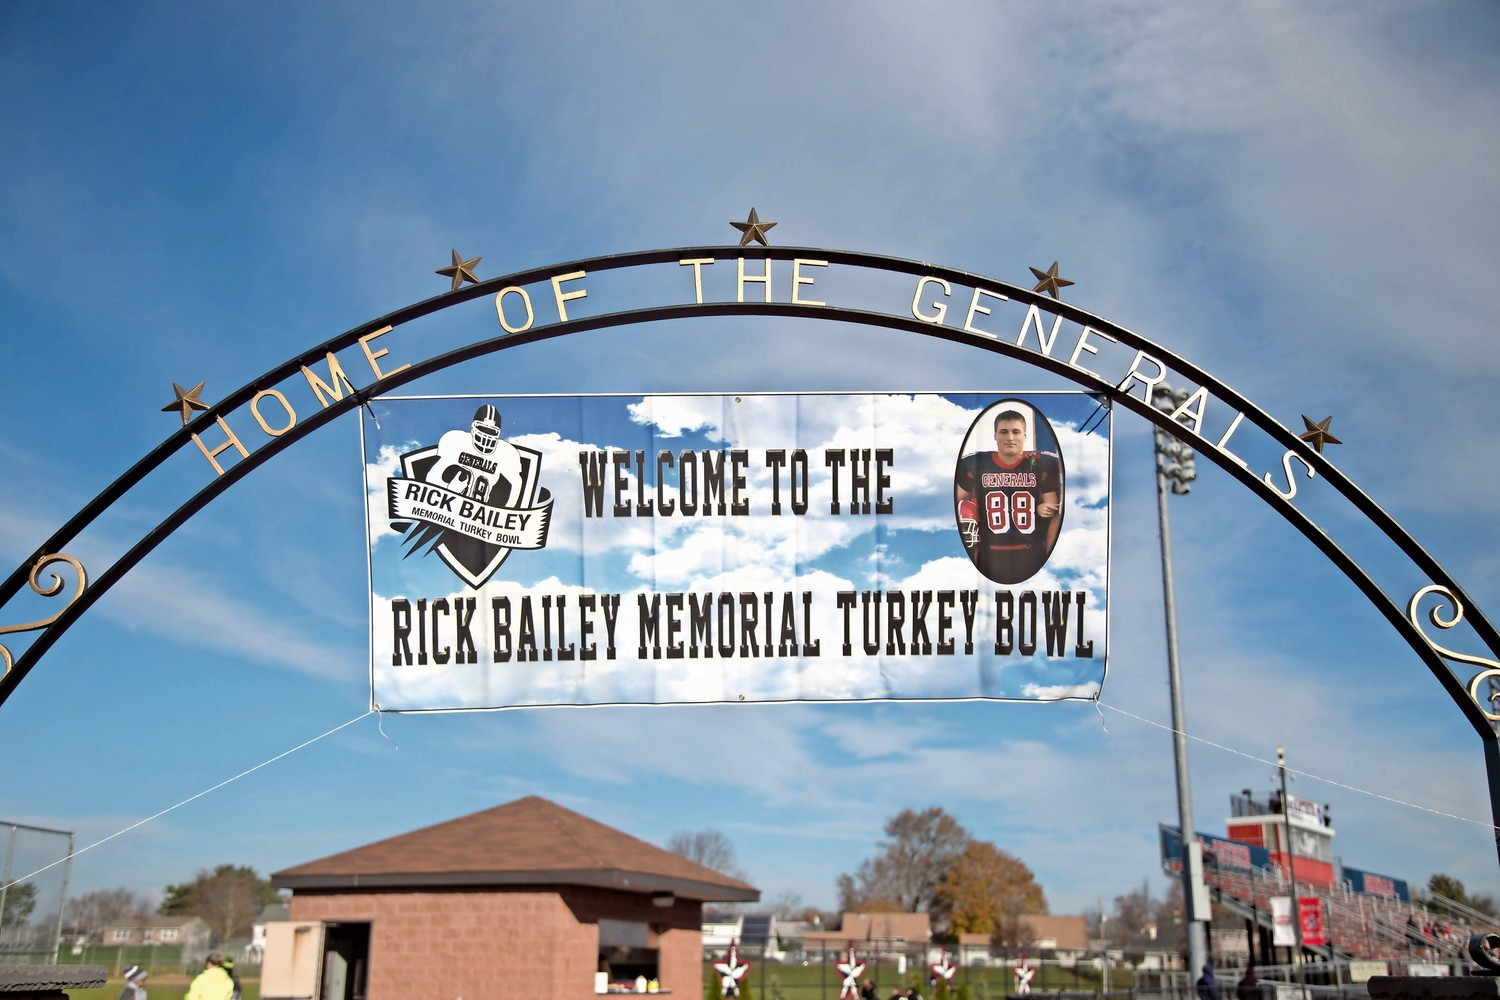 The first Turkey bowl was implemented in 2008 — one month after Bailey was killed in Albany.